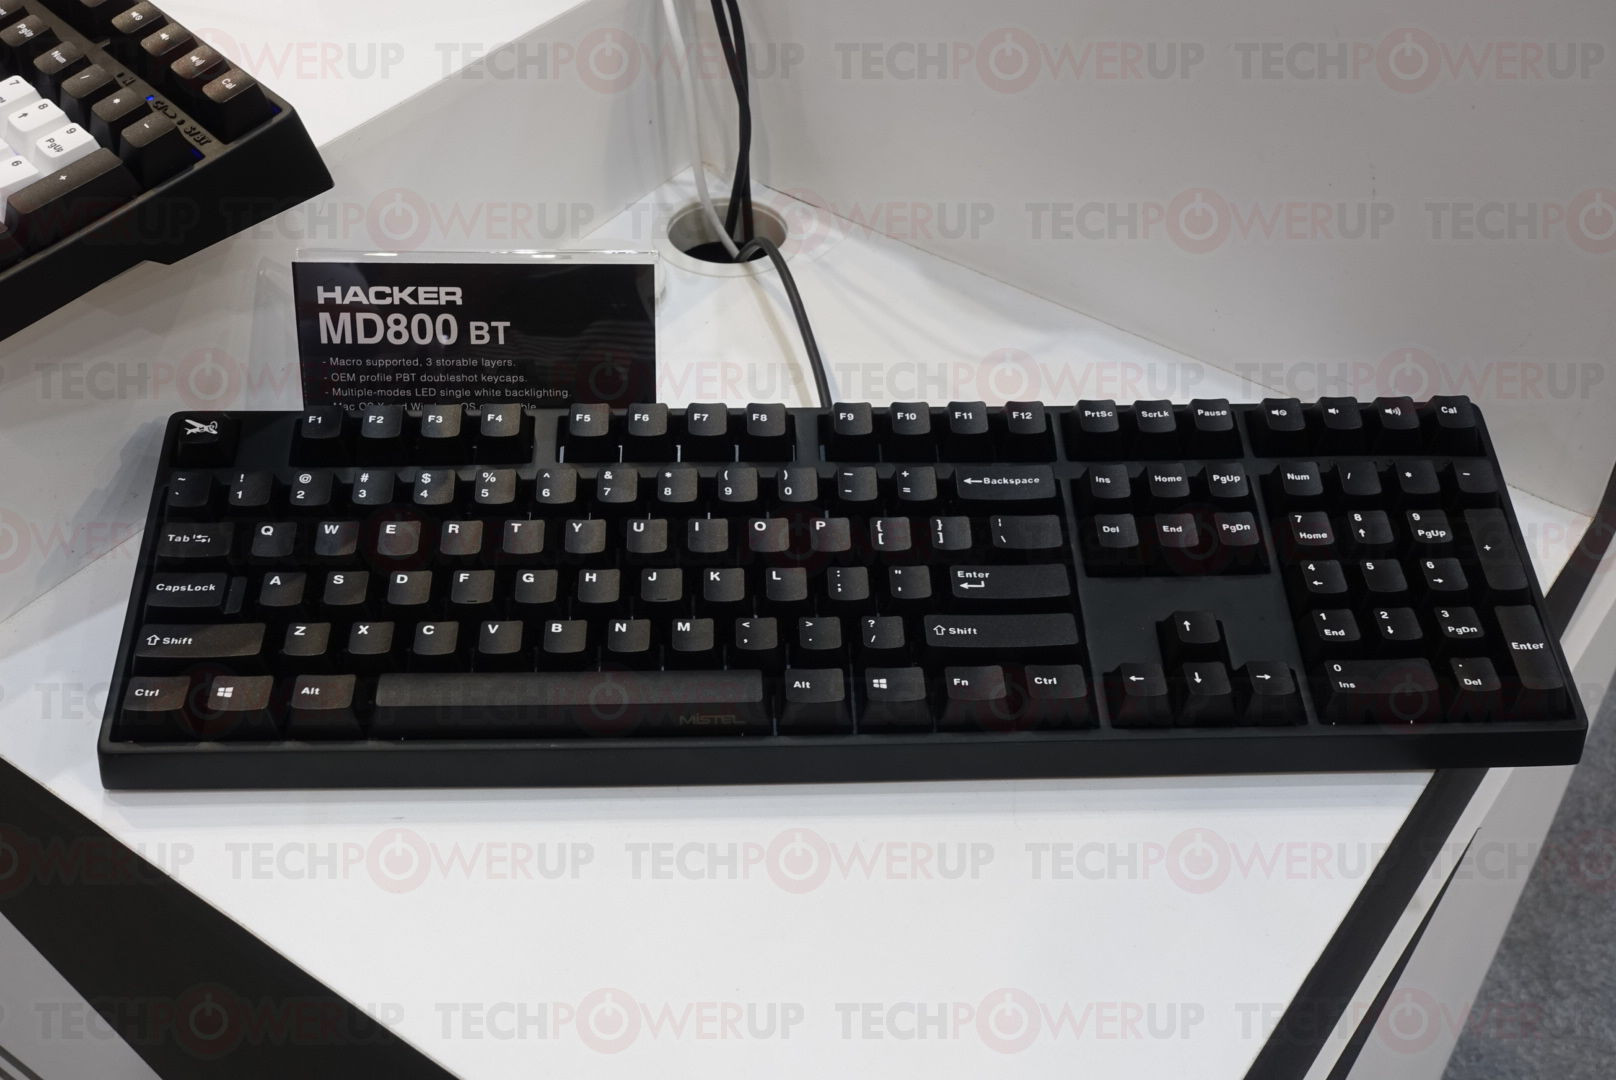 Mistel Introduces Two New Keyboards at Computex 2019